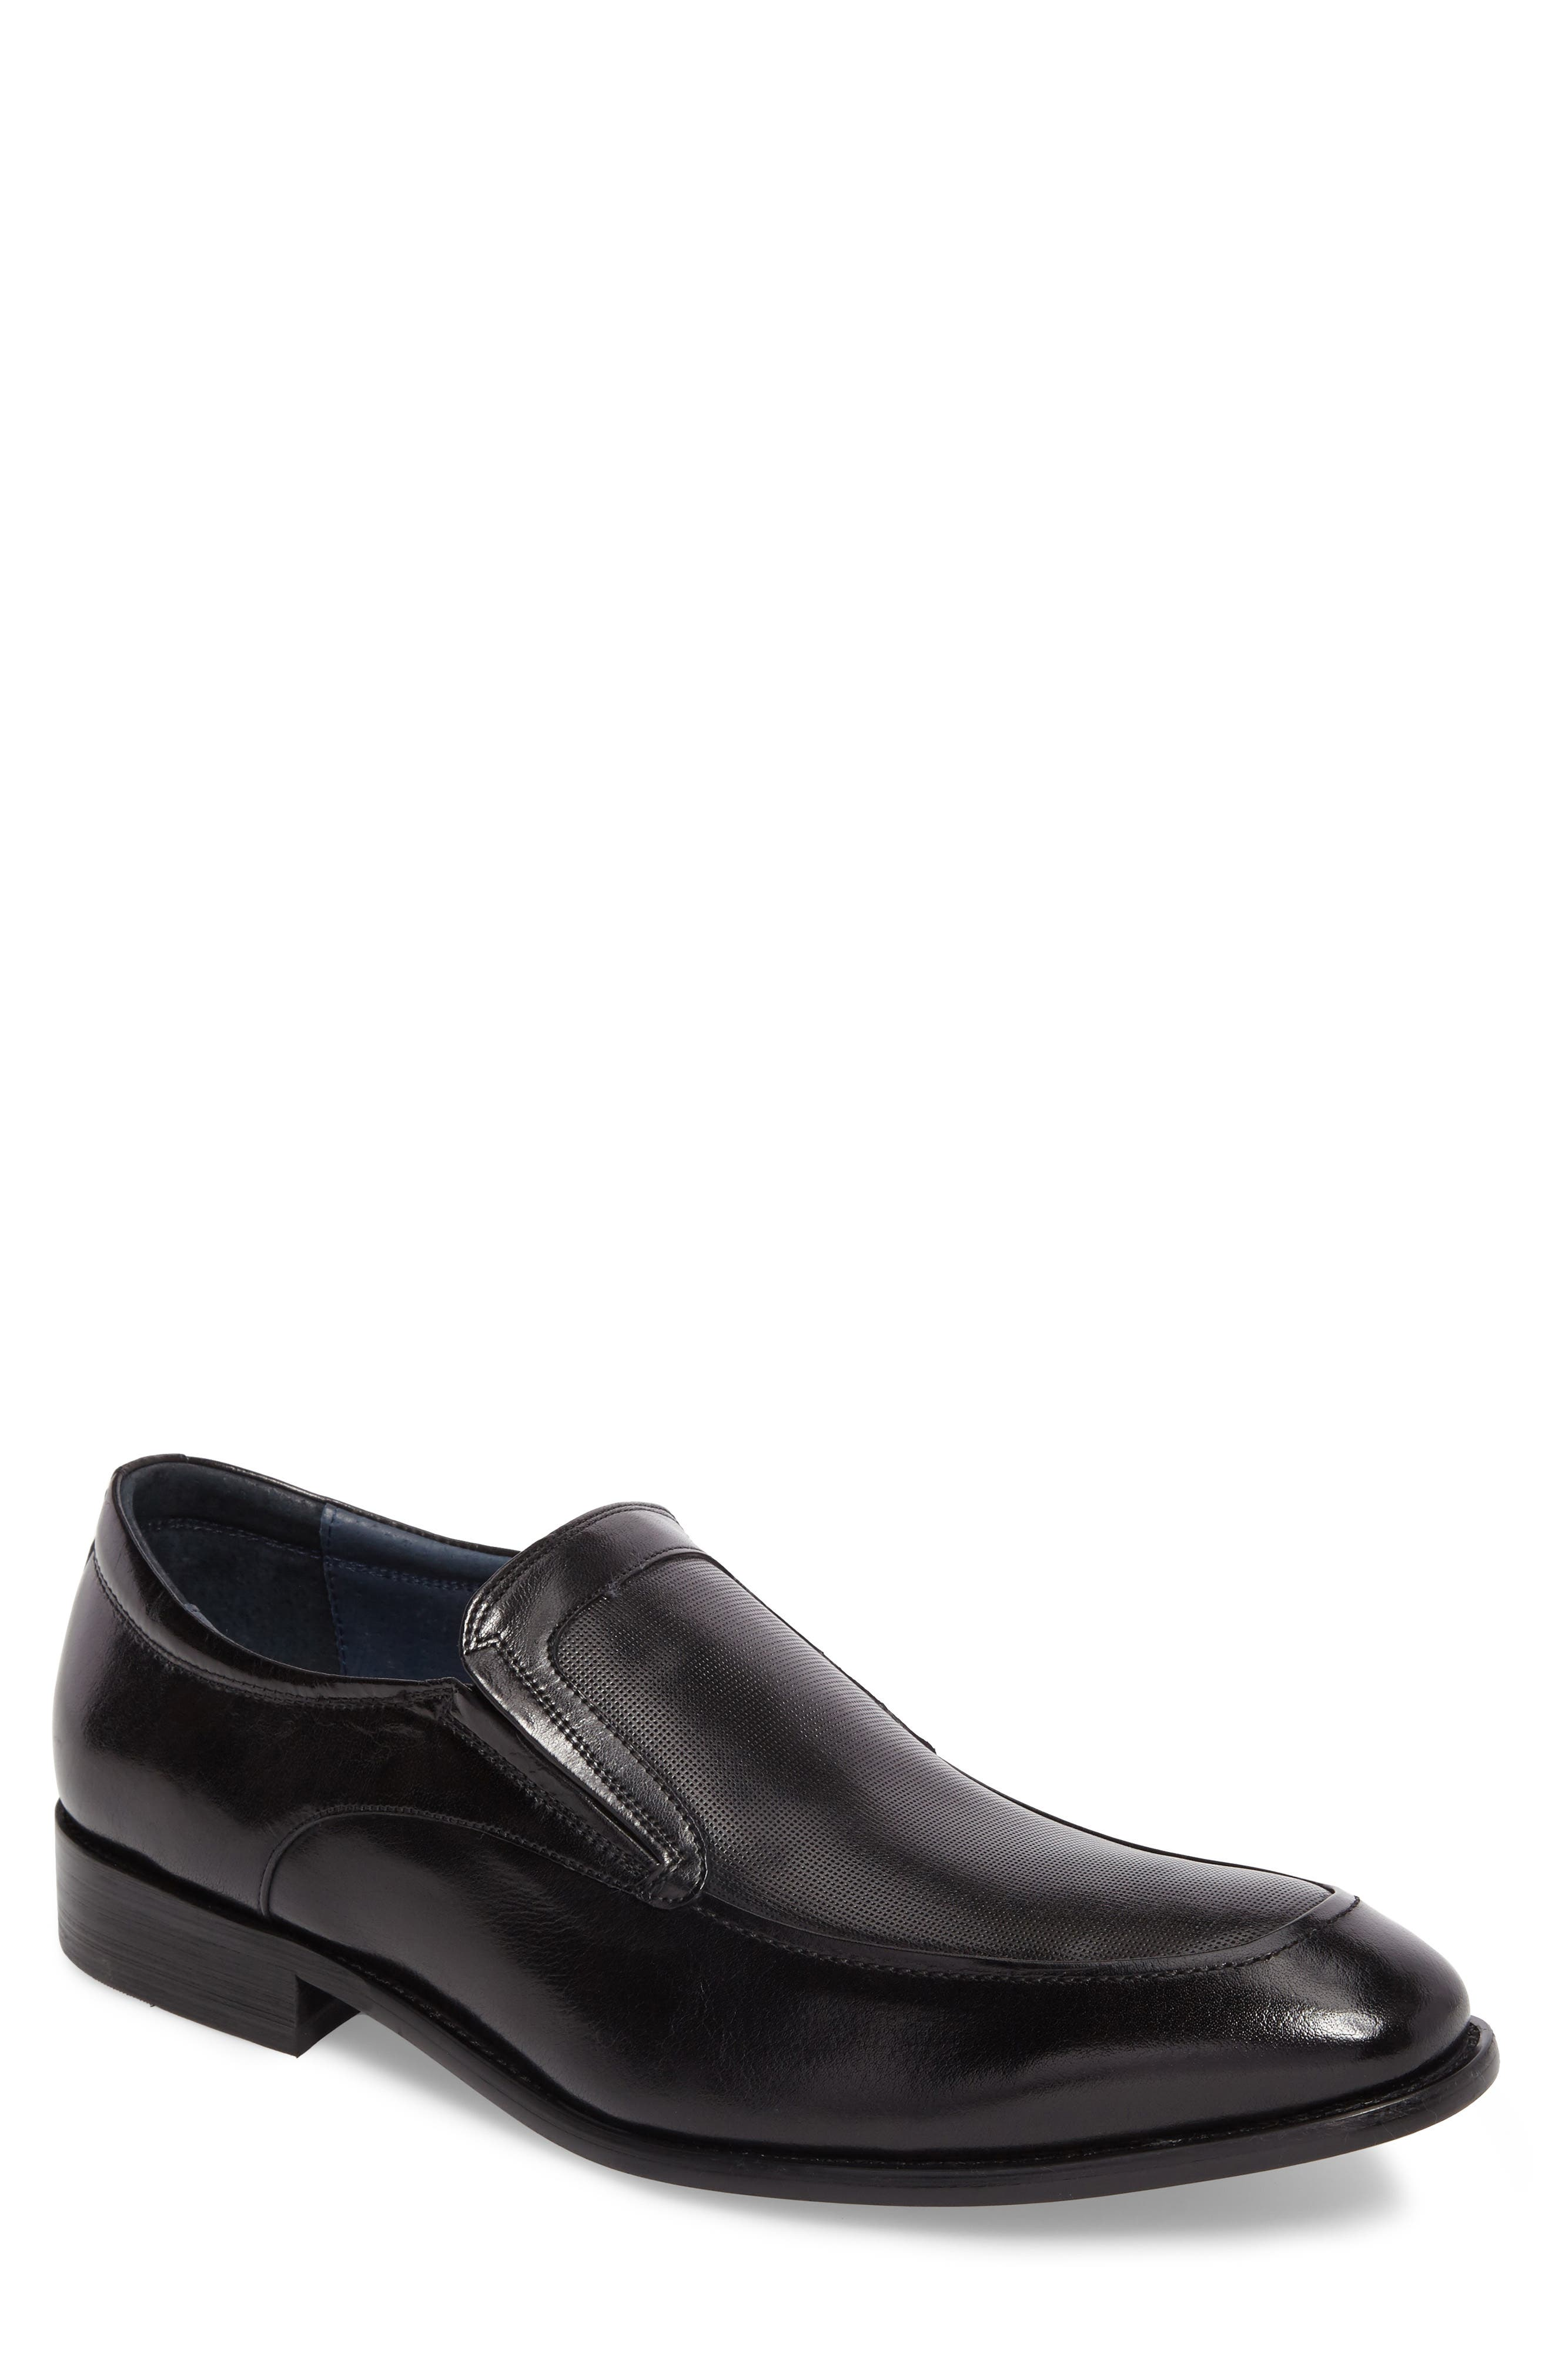 Alternate Image 1 Selected - Stacy Adams Jace Embossed Apron Toe Loafer (Men)